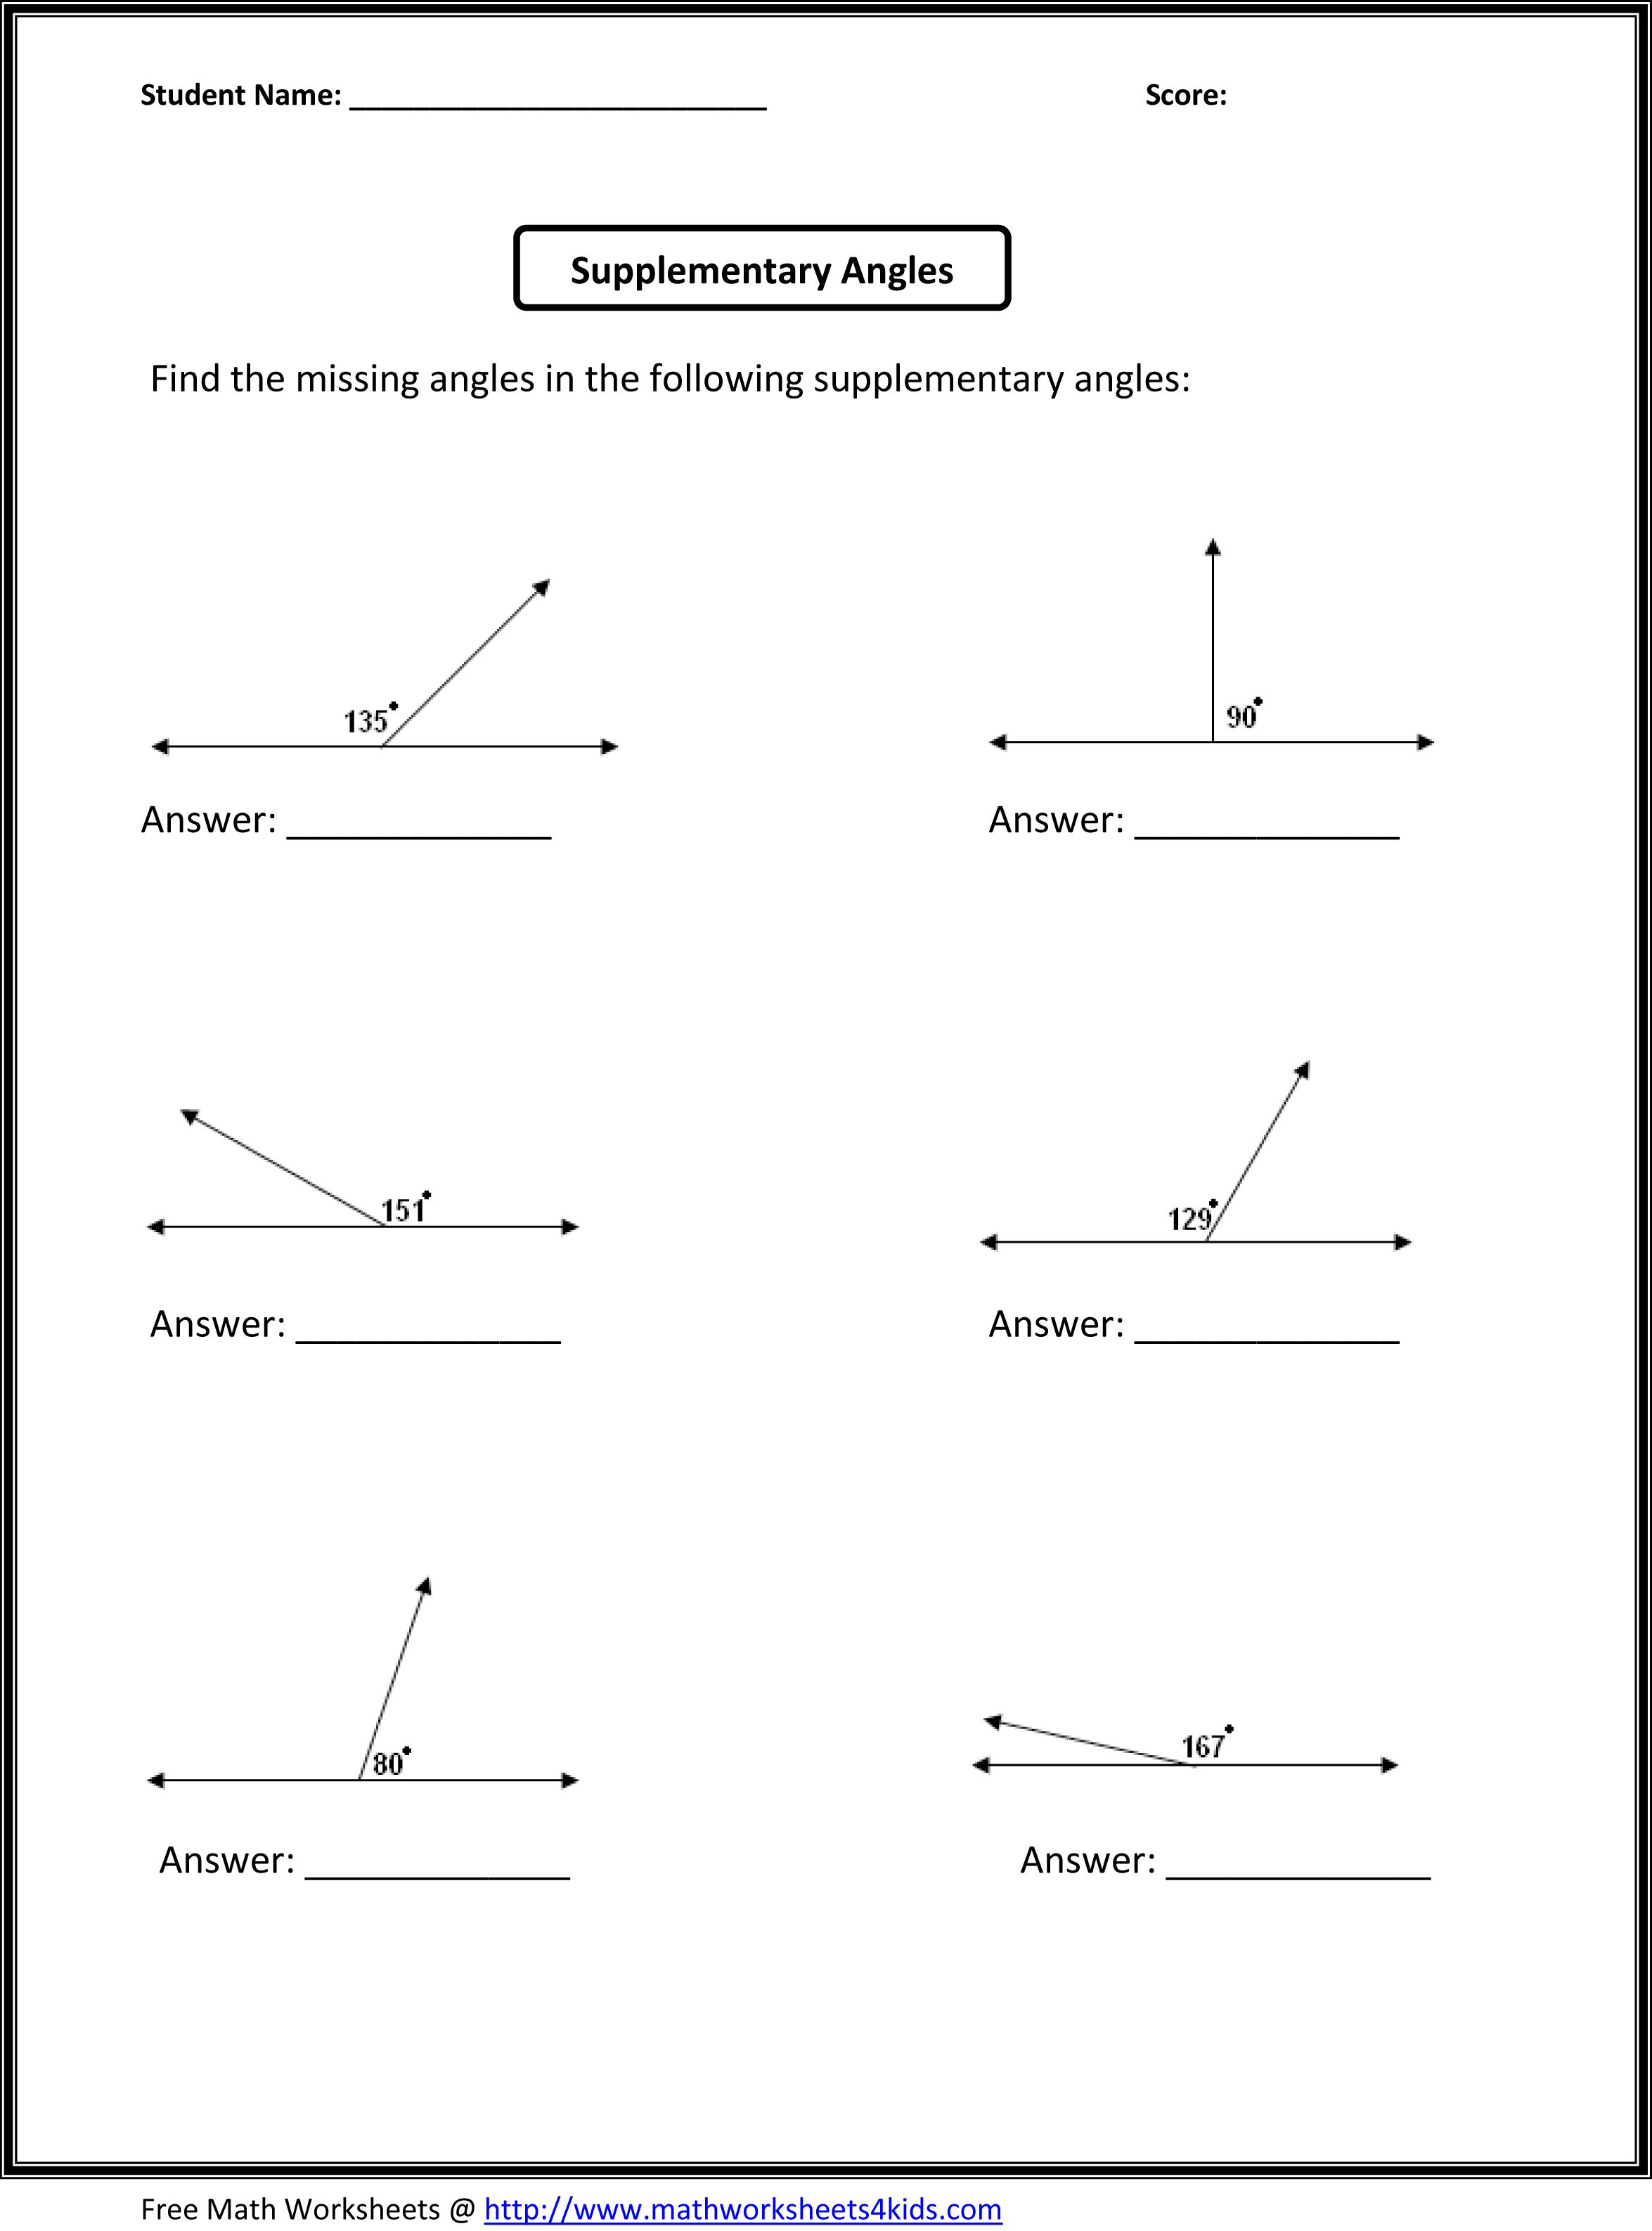 math worksheet : 1000 images about math worksheets on pinterest  addition  : Printable Math Worksheets Grade 6